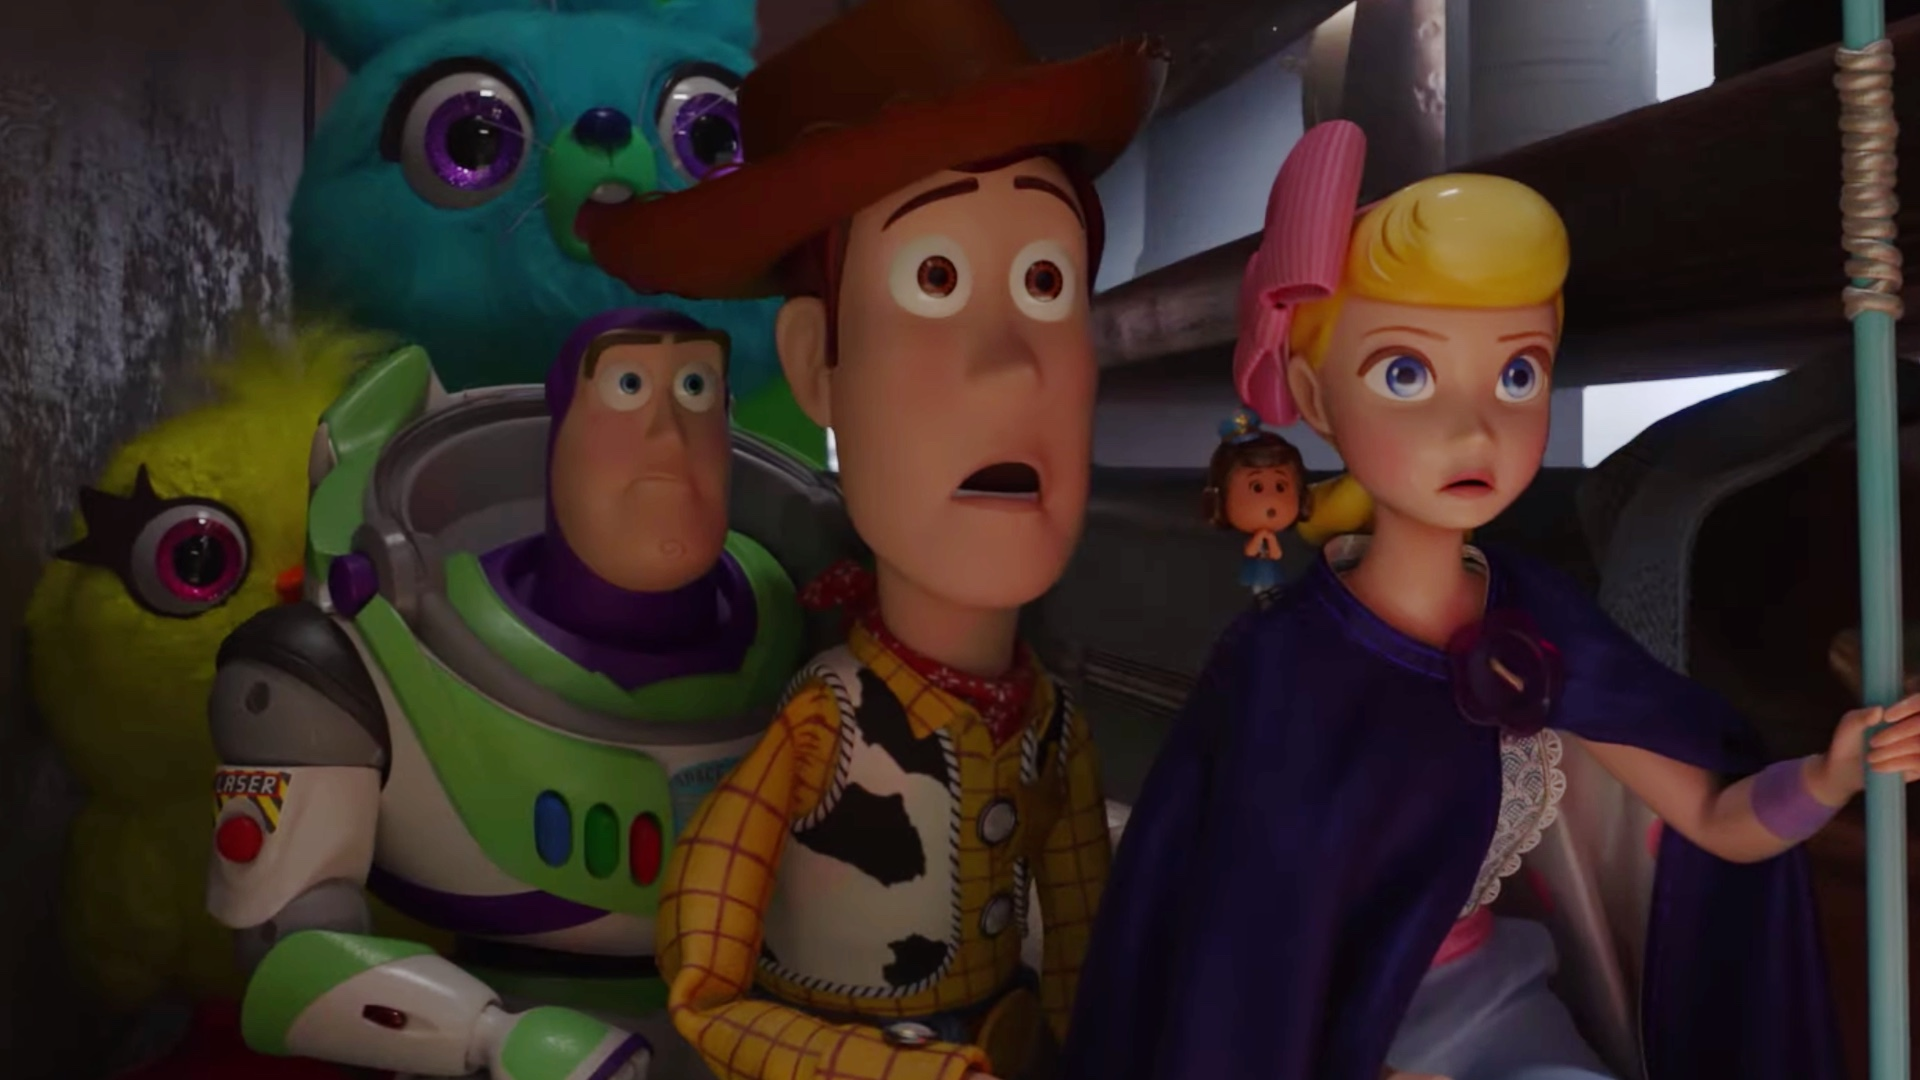 new-tv-spot-for-toy-story-4-offers-some-funny-new-footage-plus-a-new-poster-social.jpg